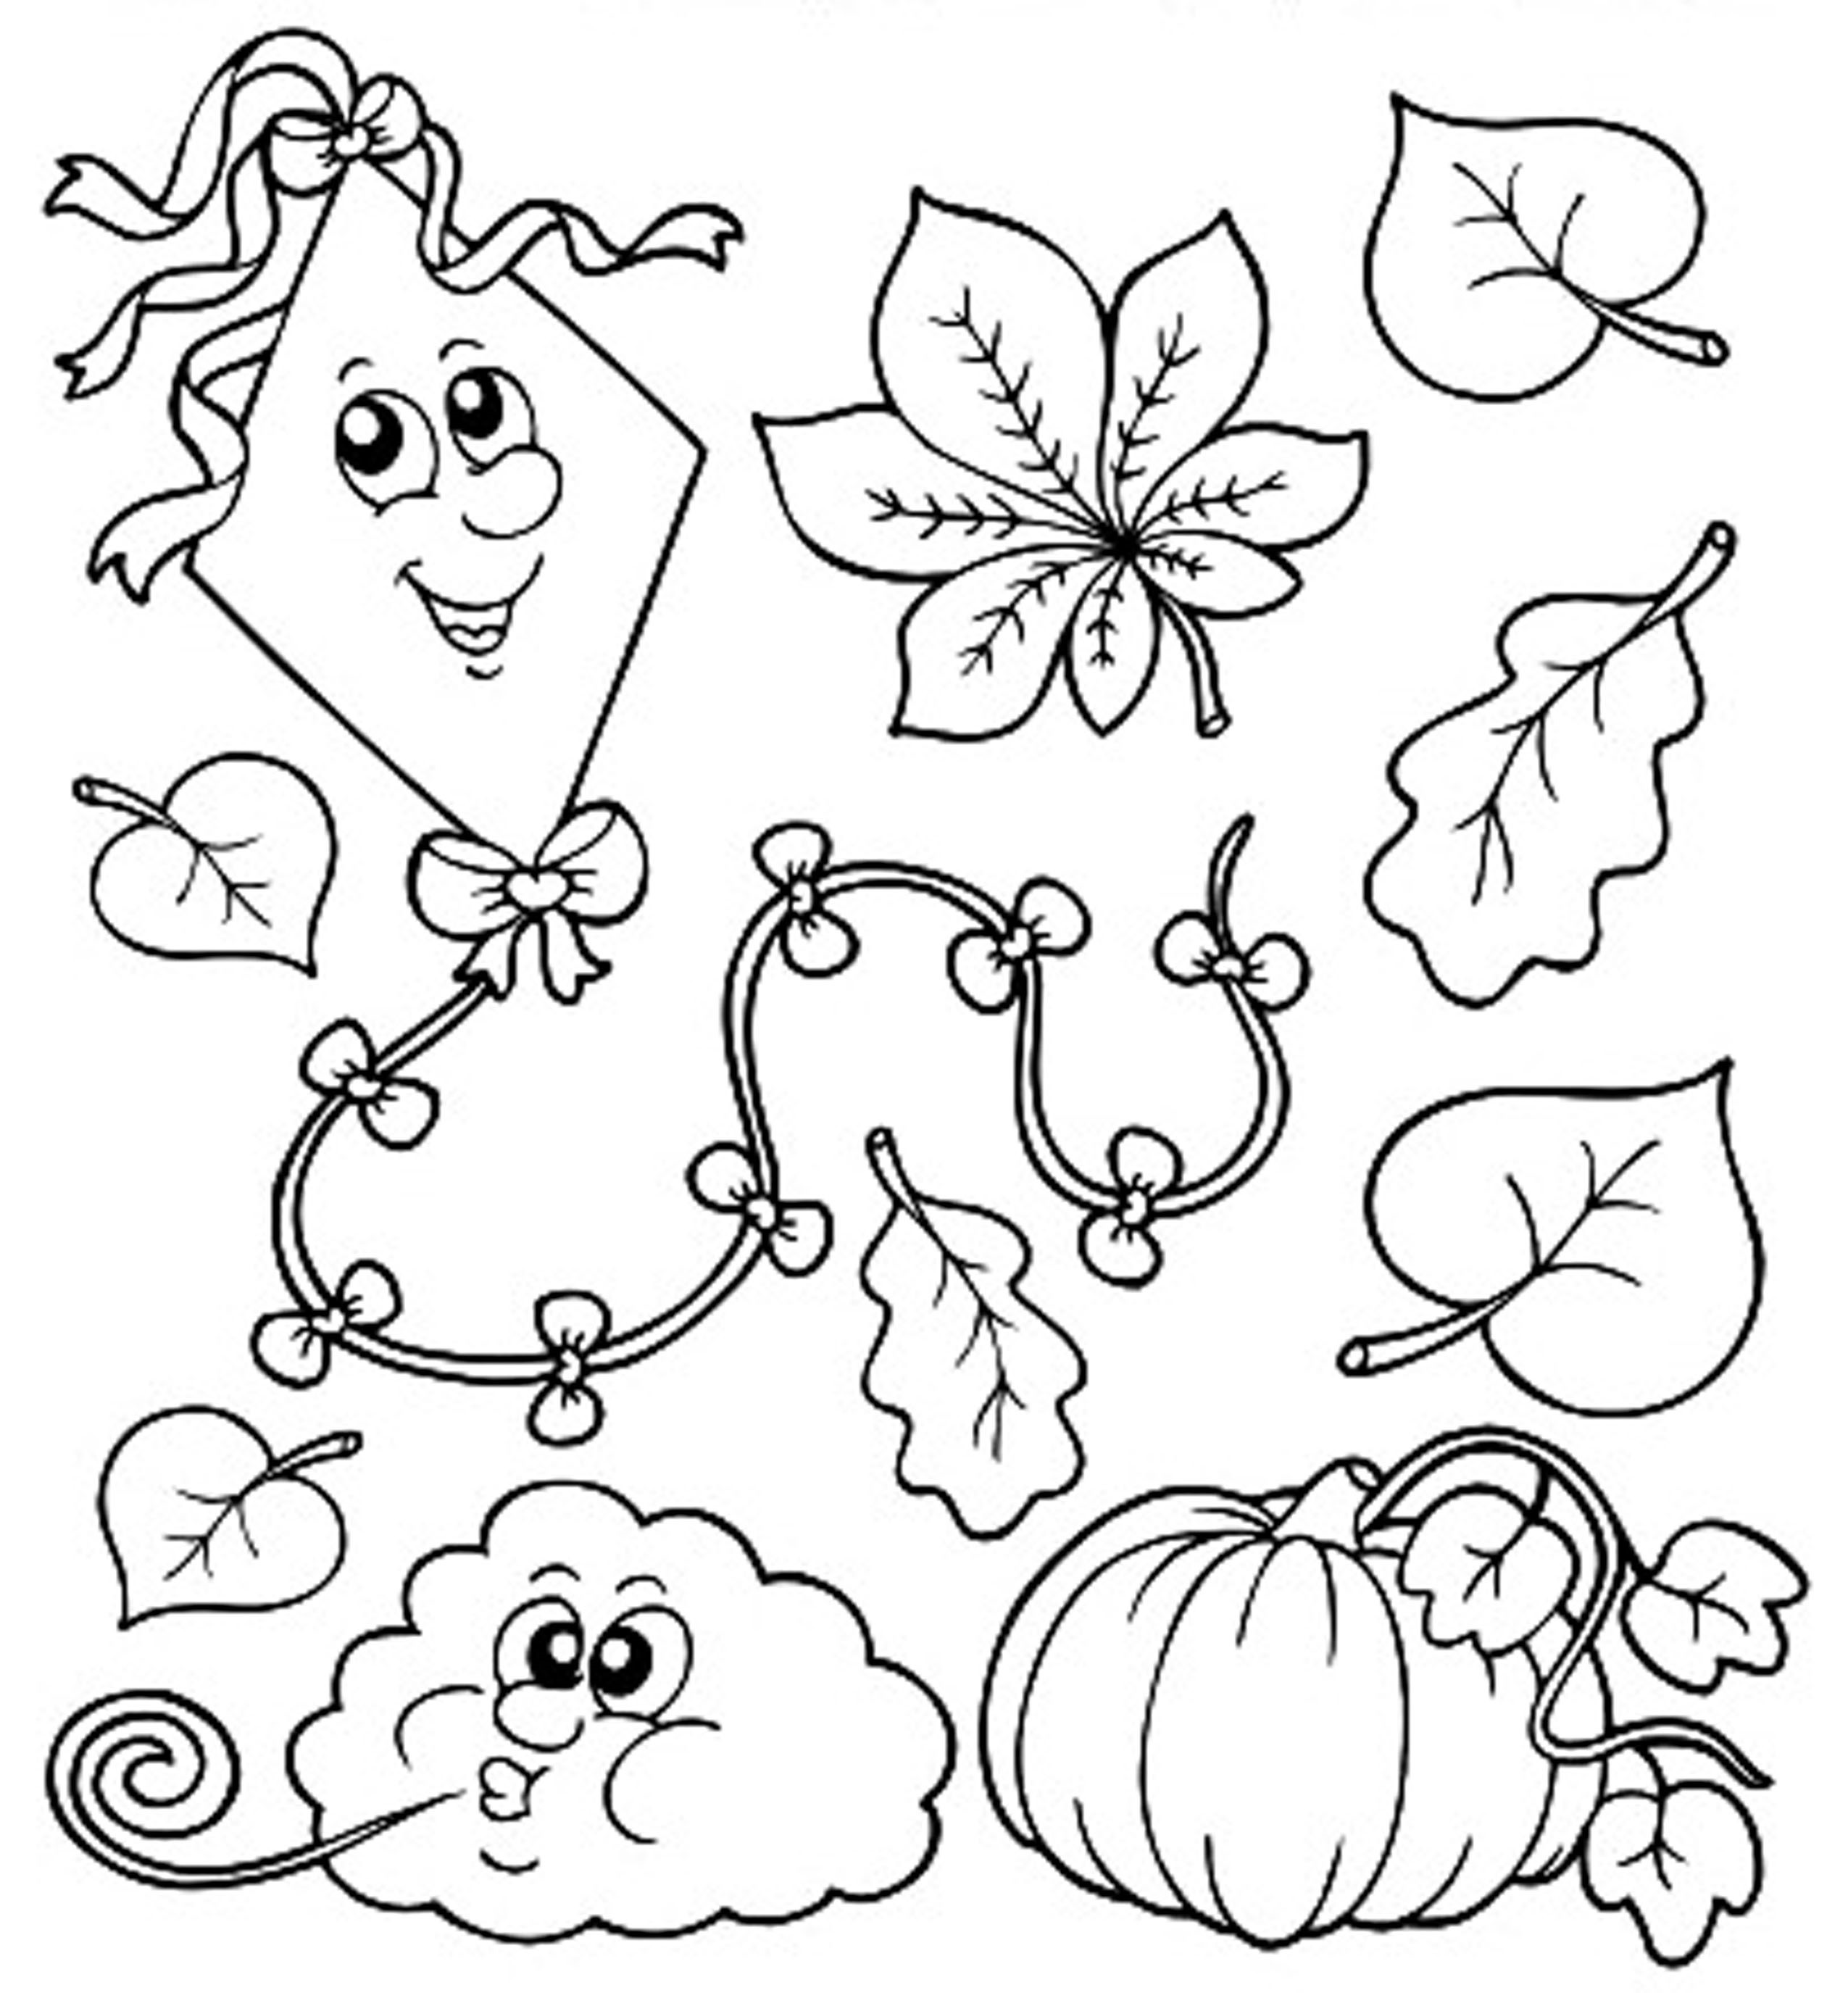 2550x2750 Season Autumn And Fall Coloring Pages For Kids